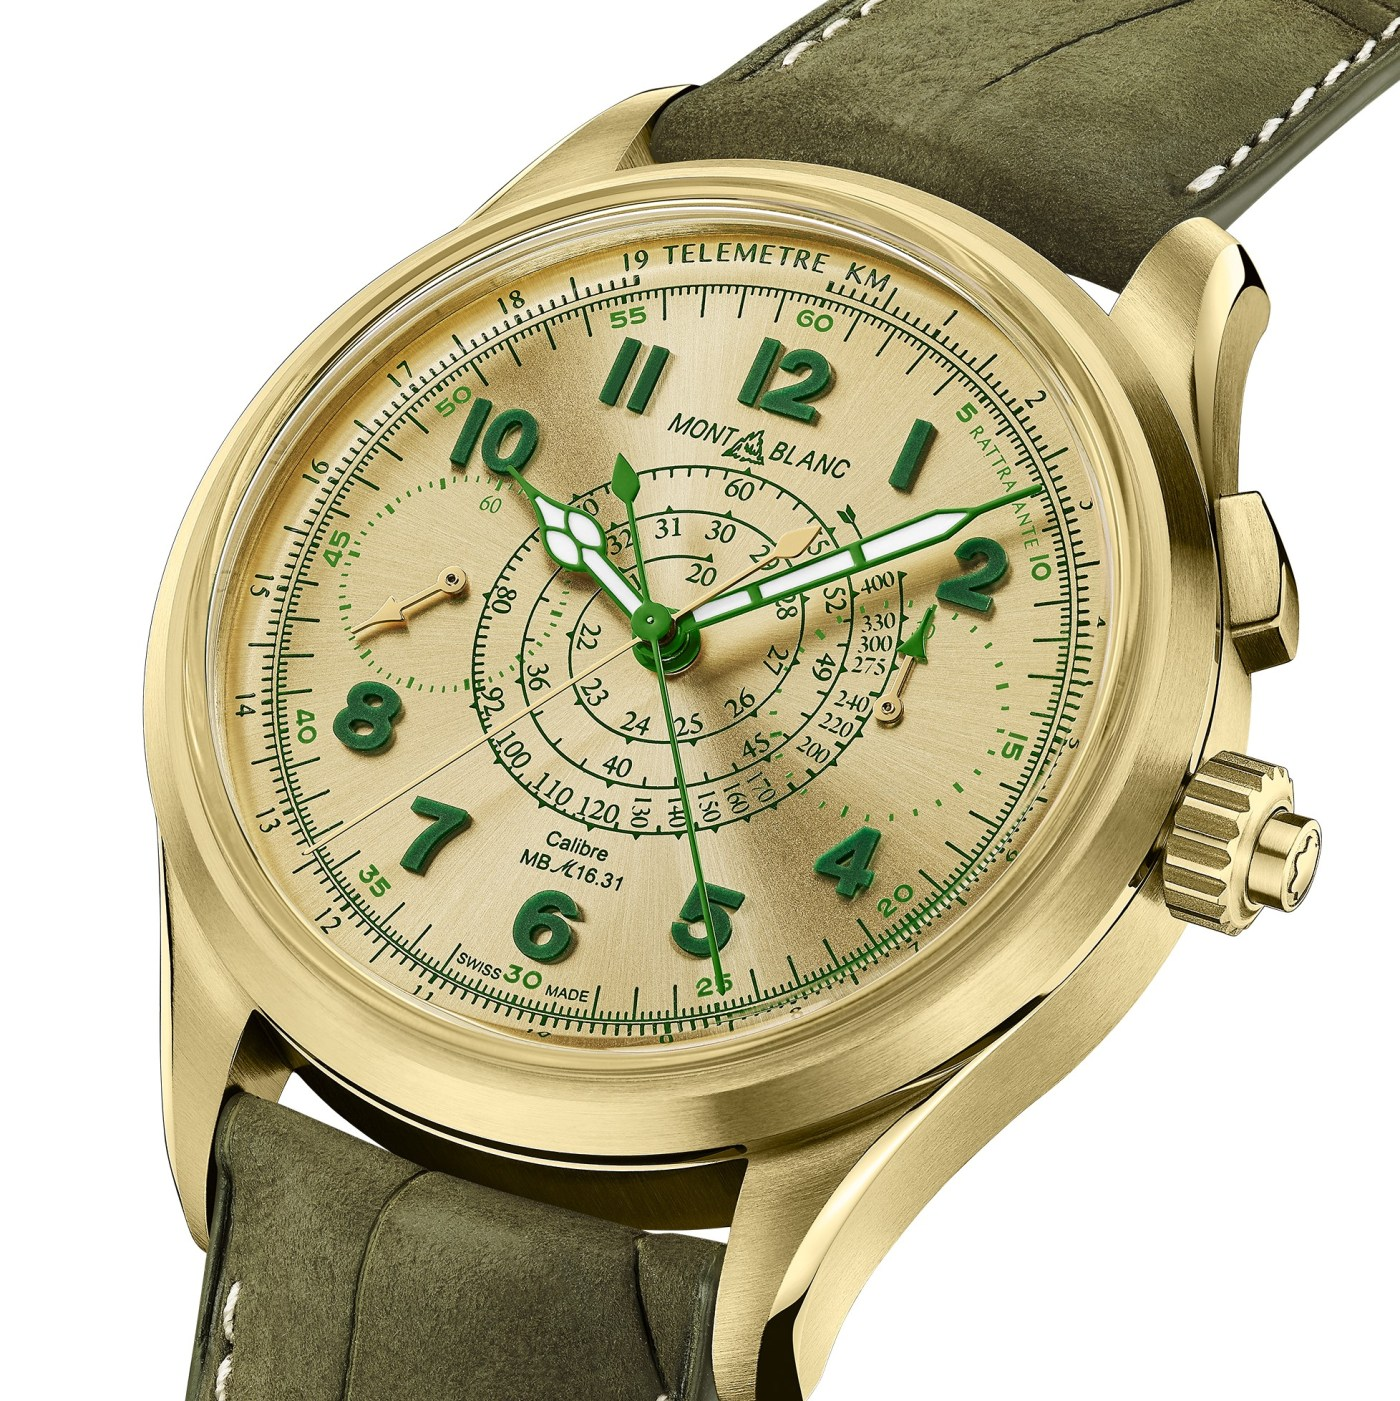 Montblanc Lime Gold 1858 Split-Second Monopusher Chronograph